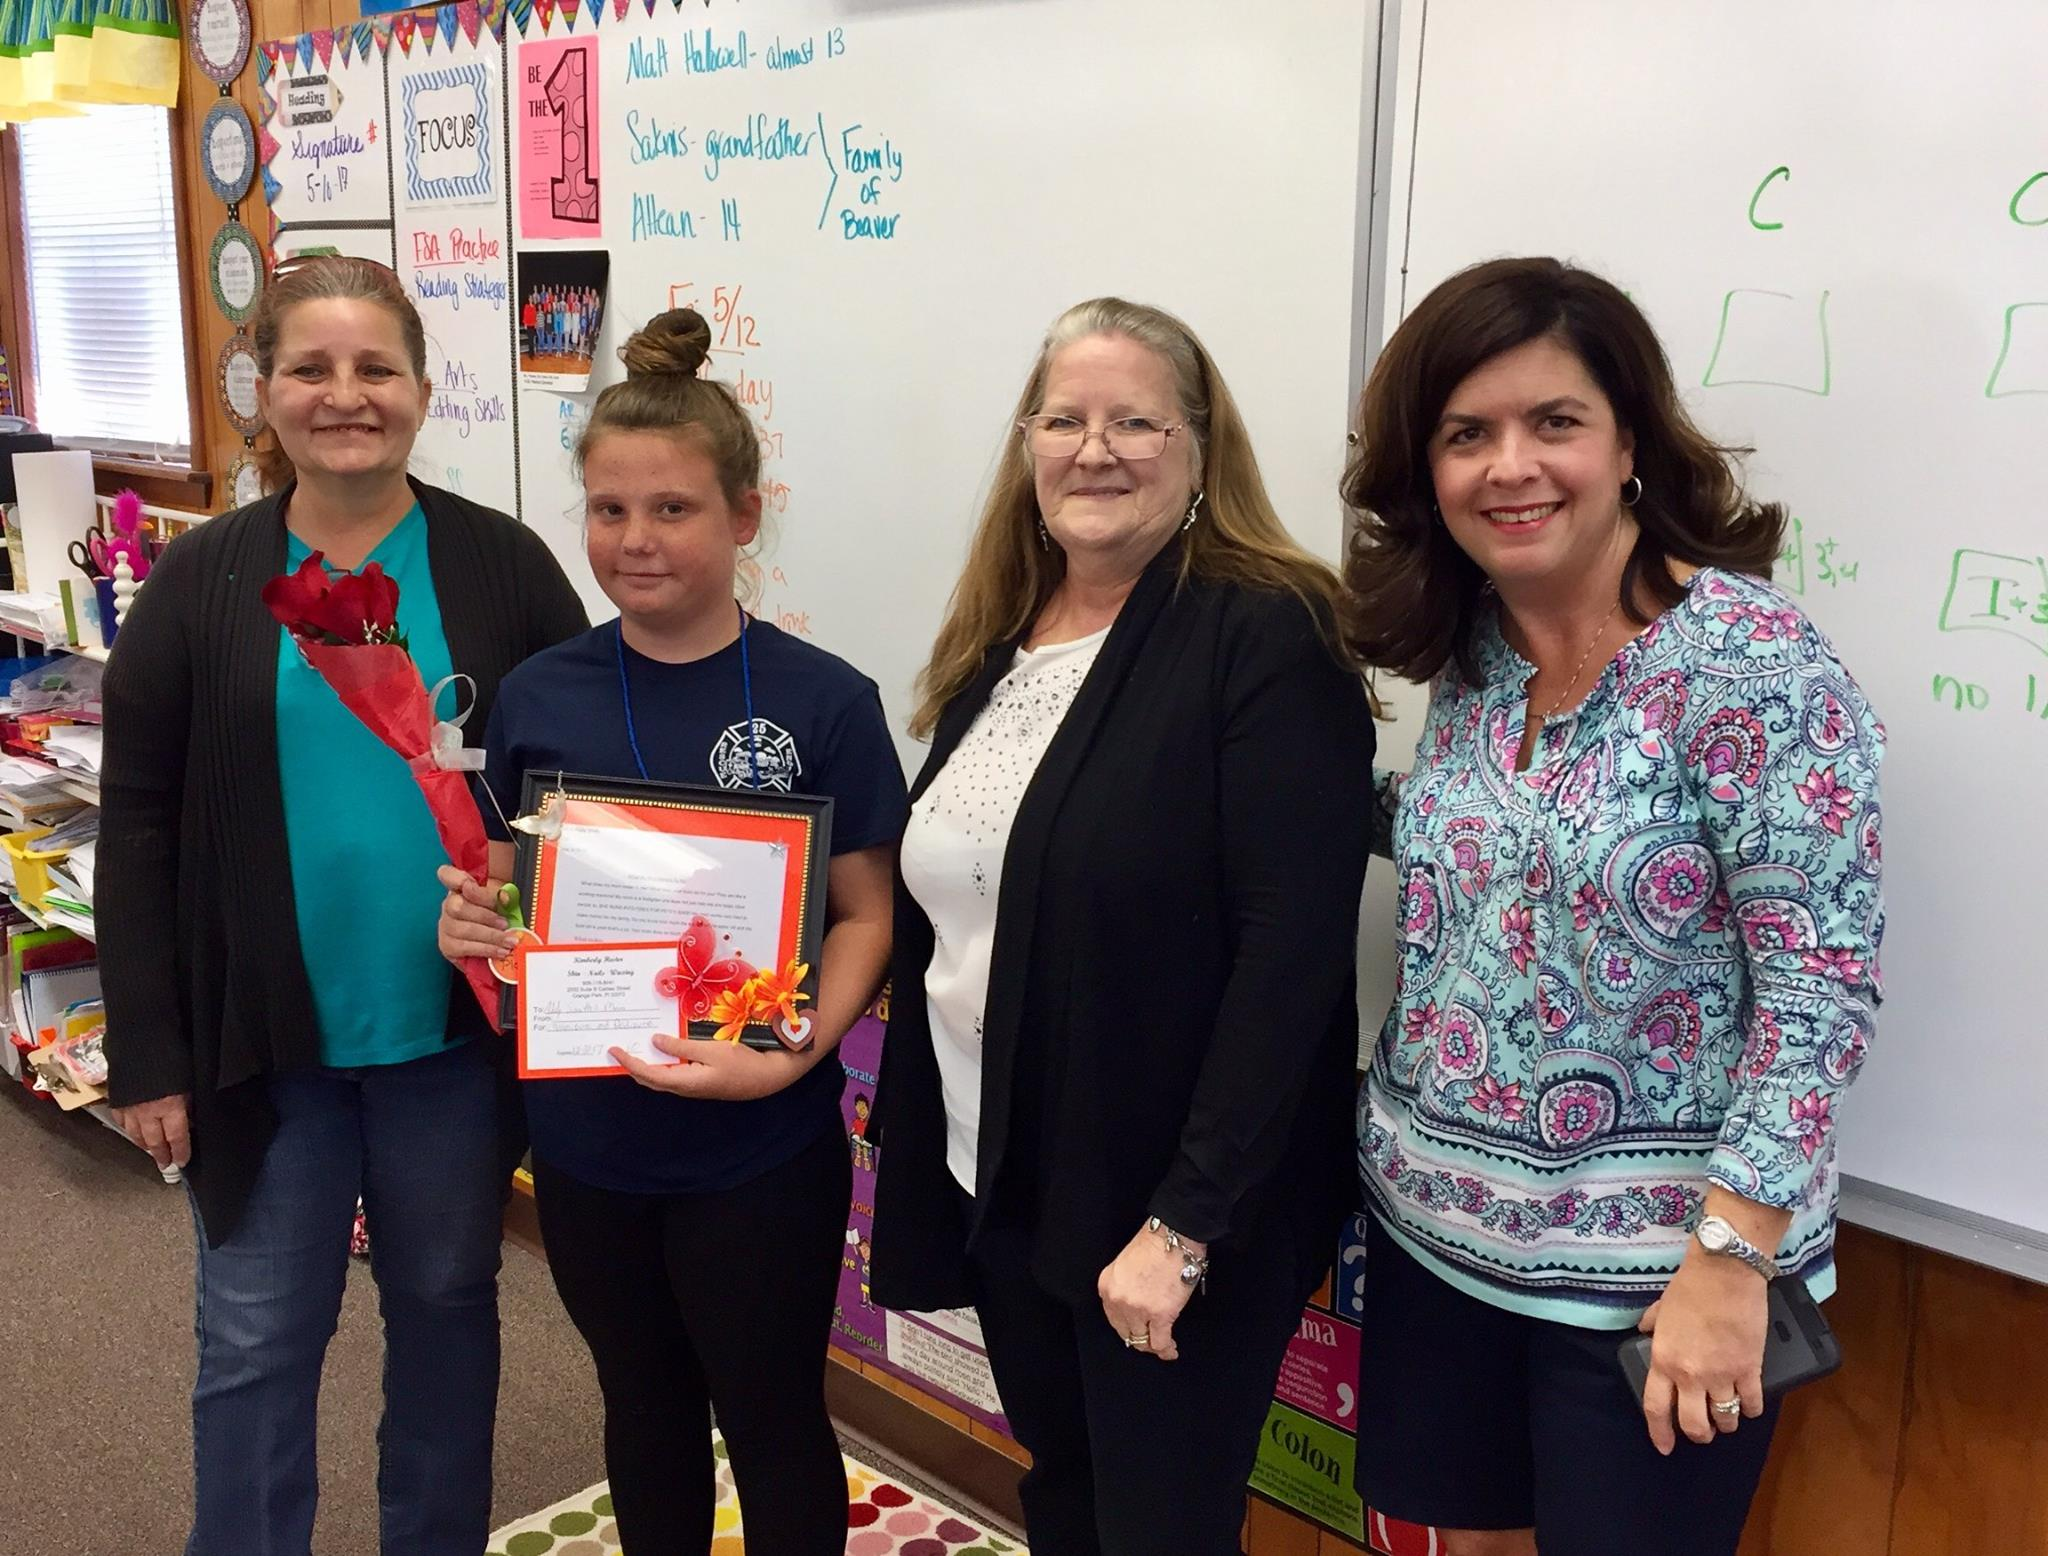 1_Mrs.-Presslers-fifth-grade-students-submitted-essays-for-a-Mothers-Day-Contest-sponsered-by-www.mymaidscleaning.com_